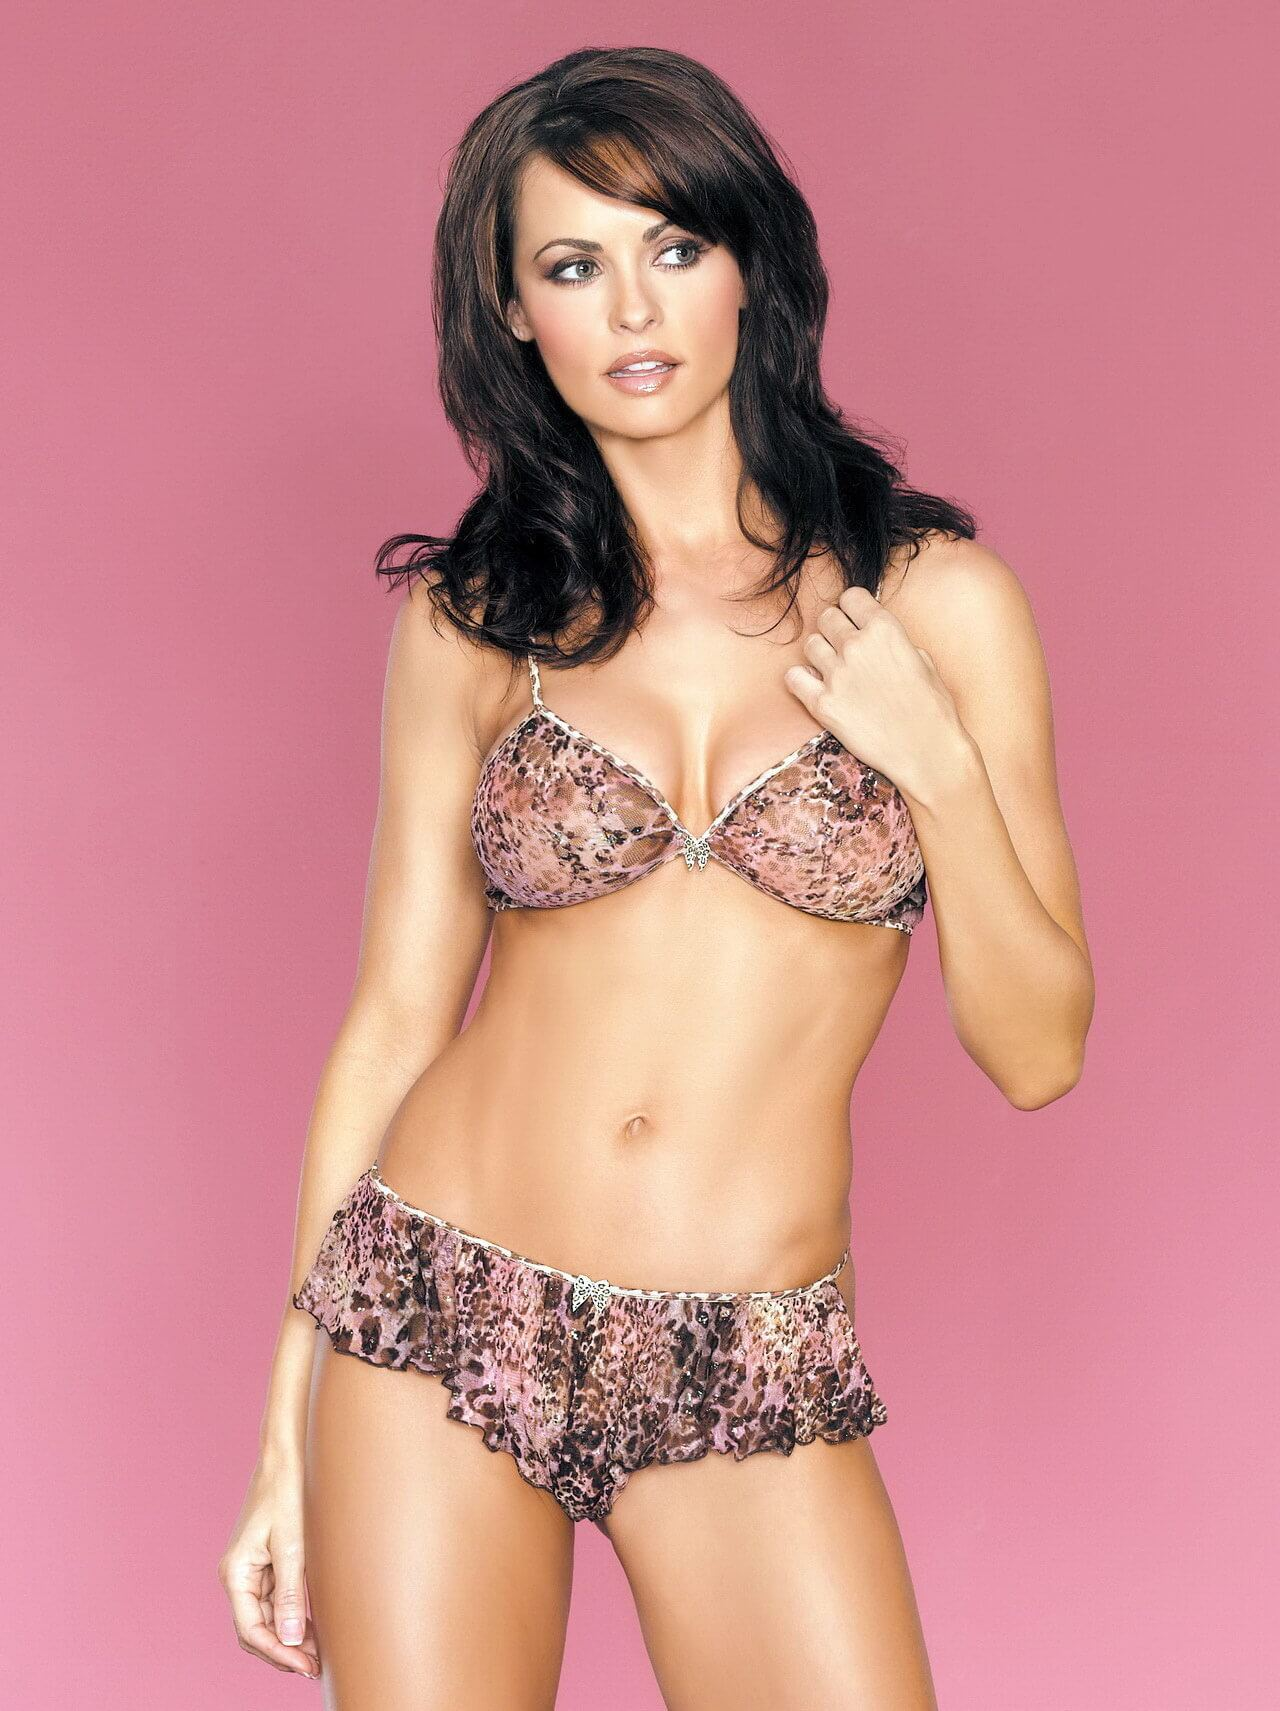 karen mcdougal hot lingerie pic